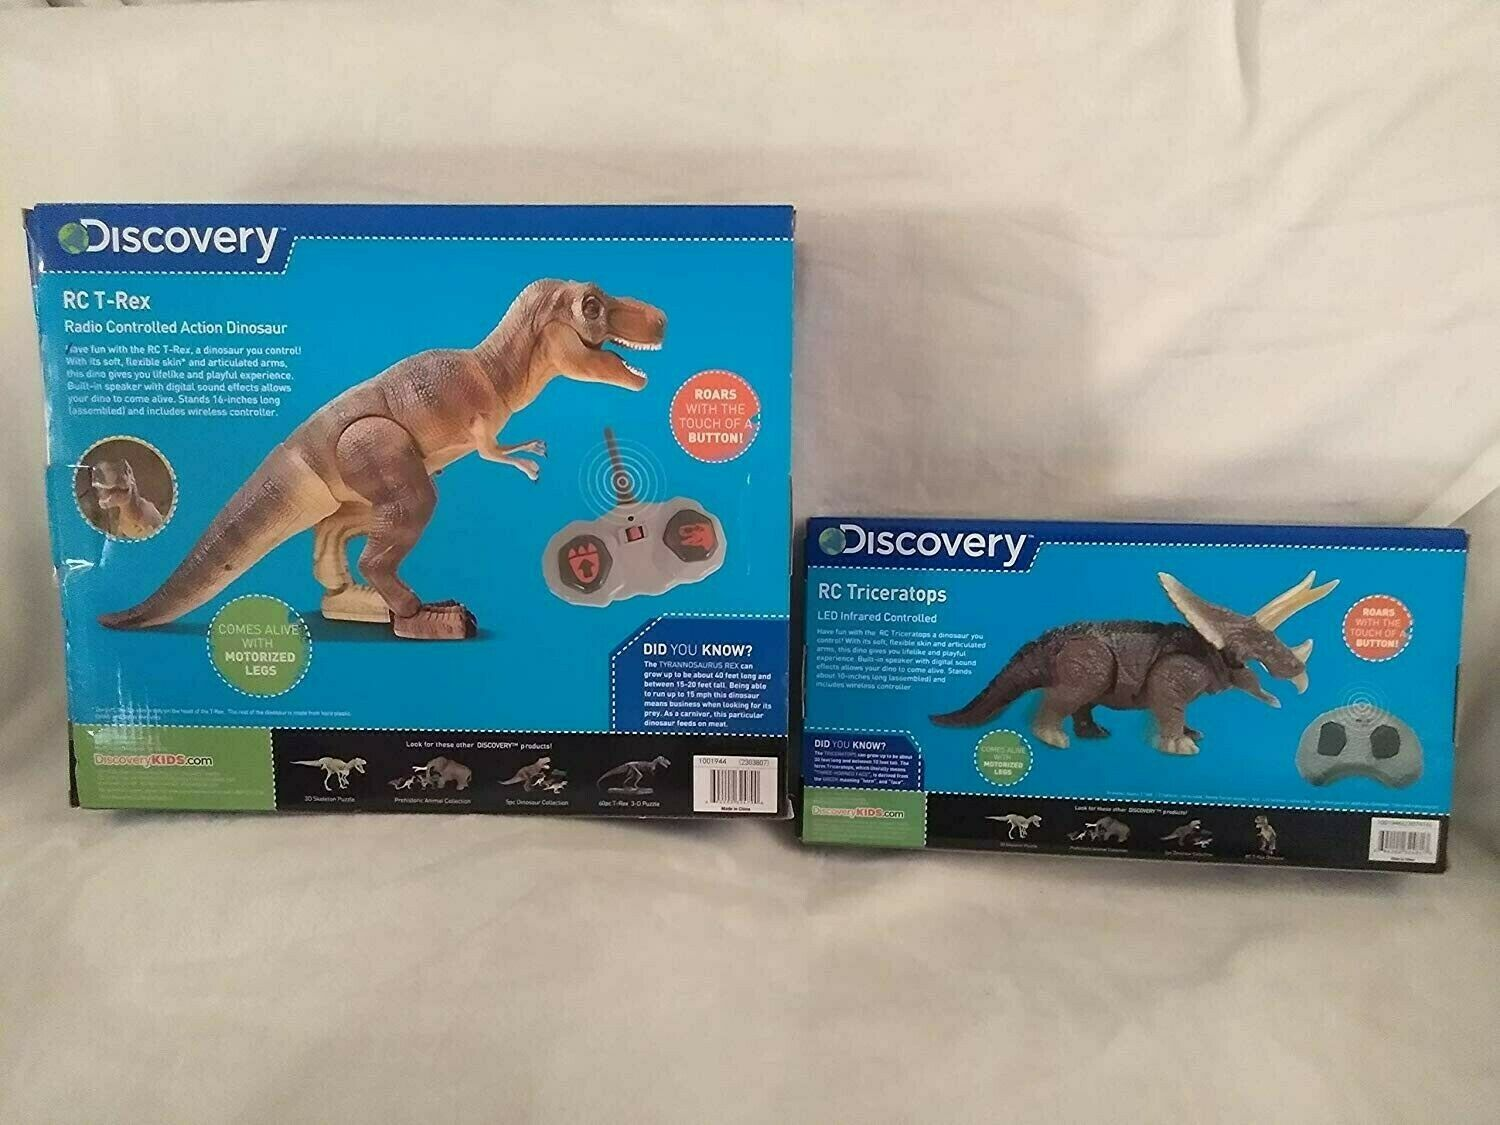 Discovery Remote Control RC T-Rex and and and RC Triceratops With Lifelike Skin Sounds bd79fa